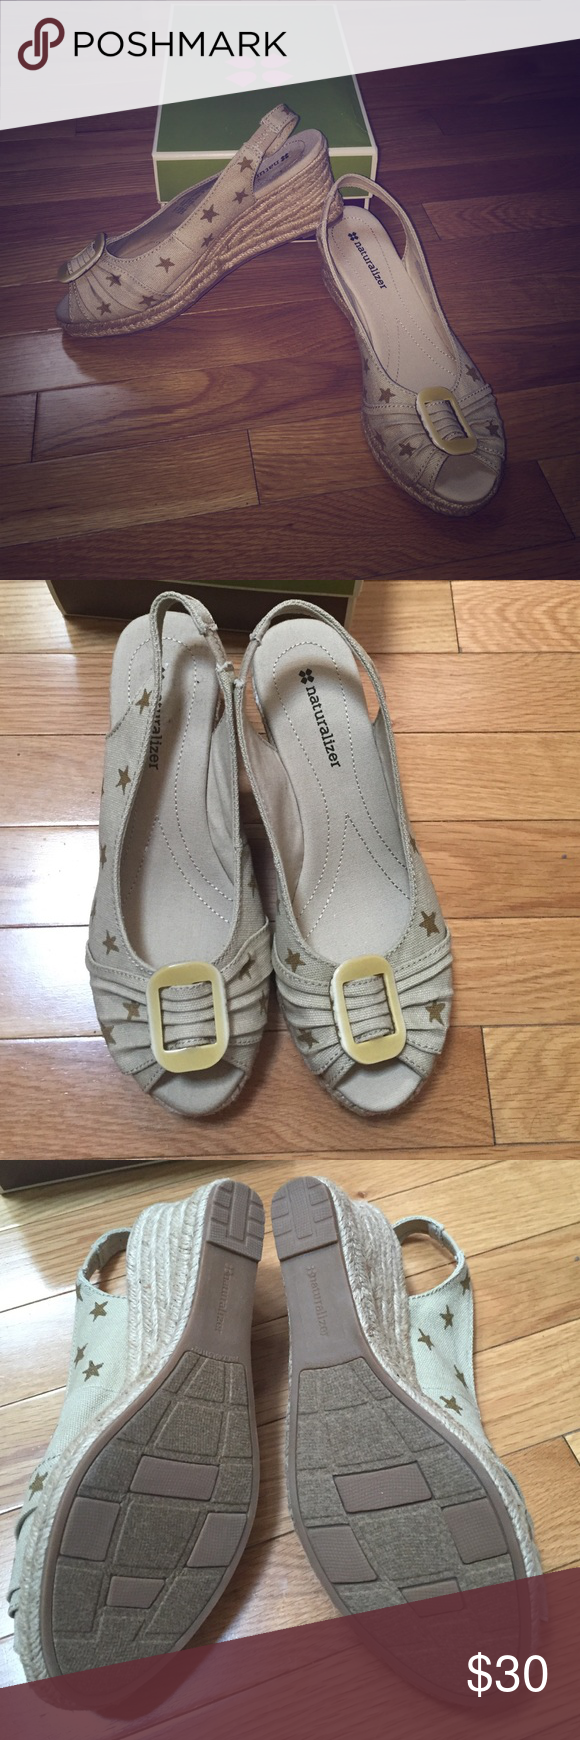 NIB Naturalizer canvas wedges Brand-new in box, beige canvas wedges with Gold stars, women's 8 1/2 Naturalizer Shoes Wedges